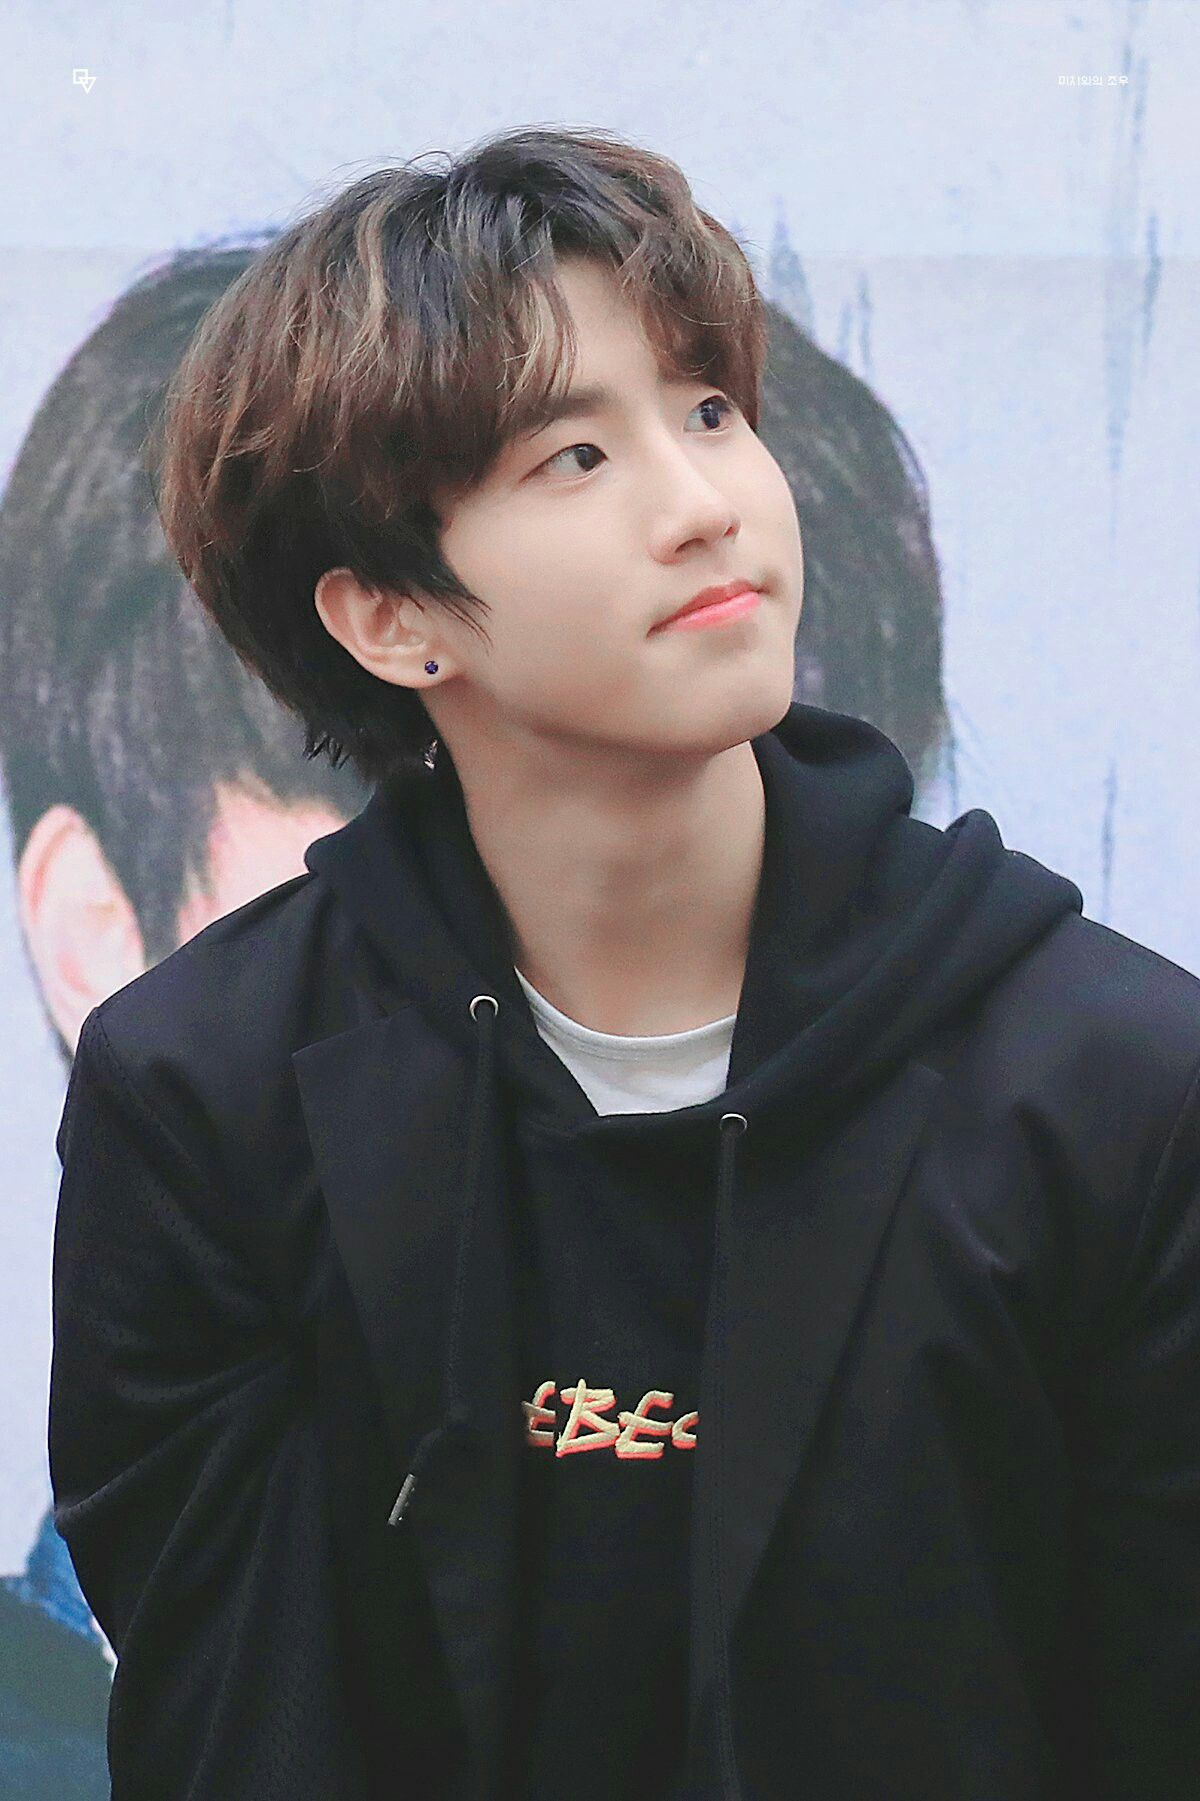 Han Han Jisung Baby squirrel, Kids icon, People